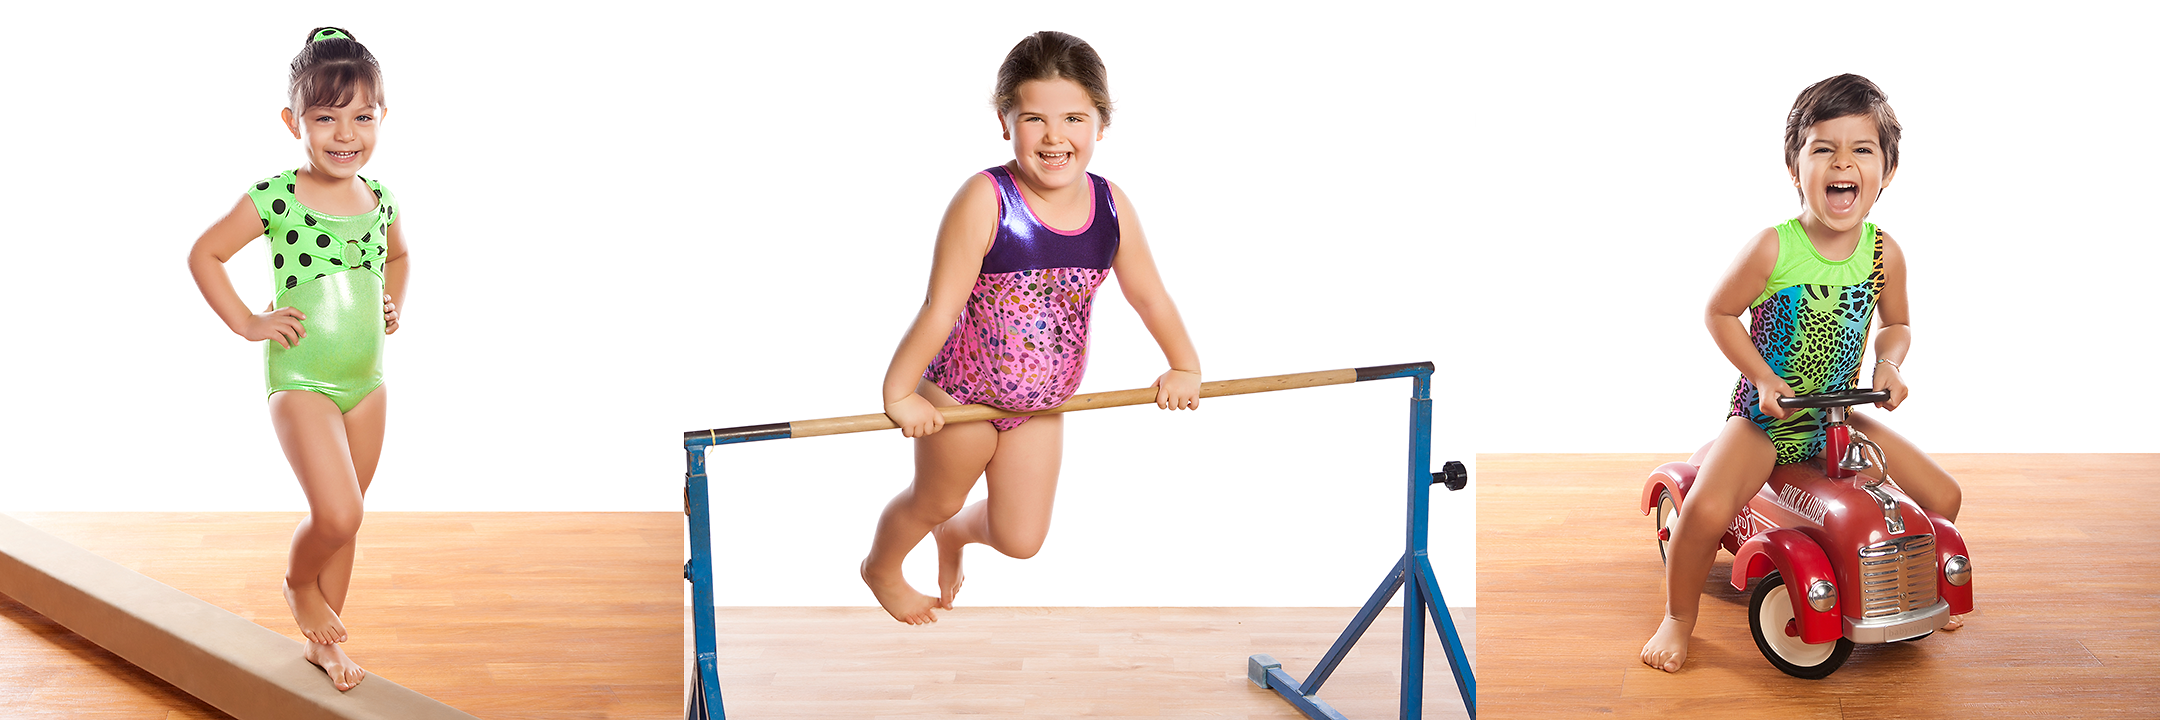 pre-school-gymnastics-photography-11